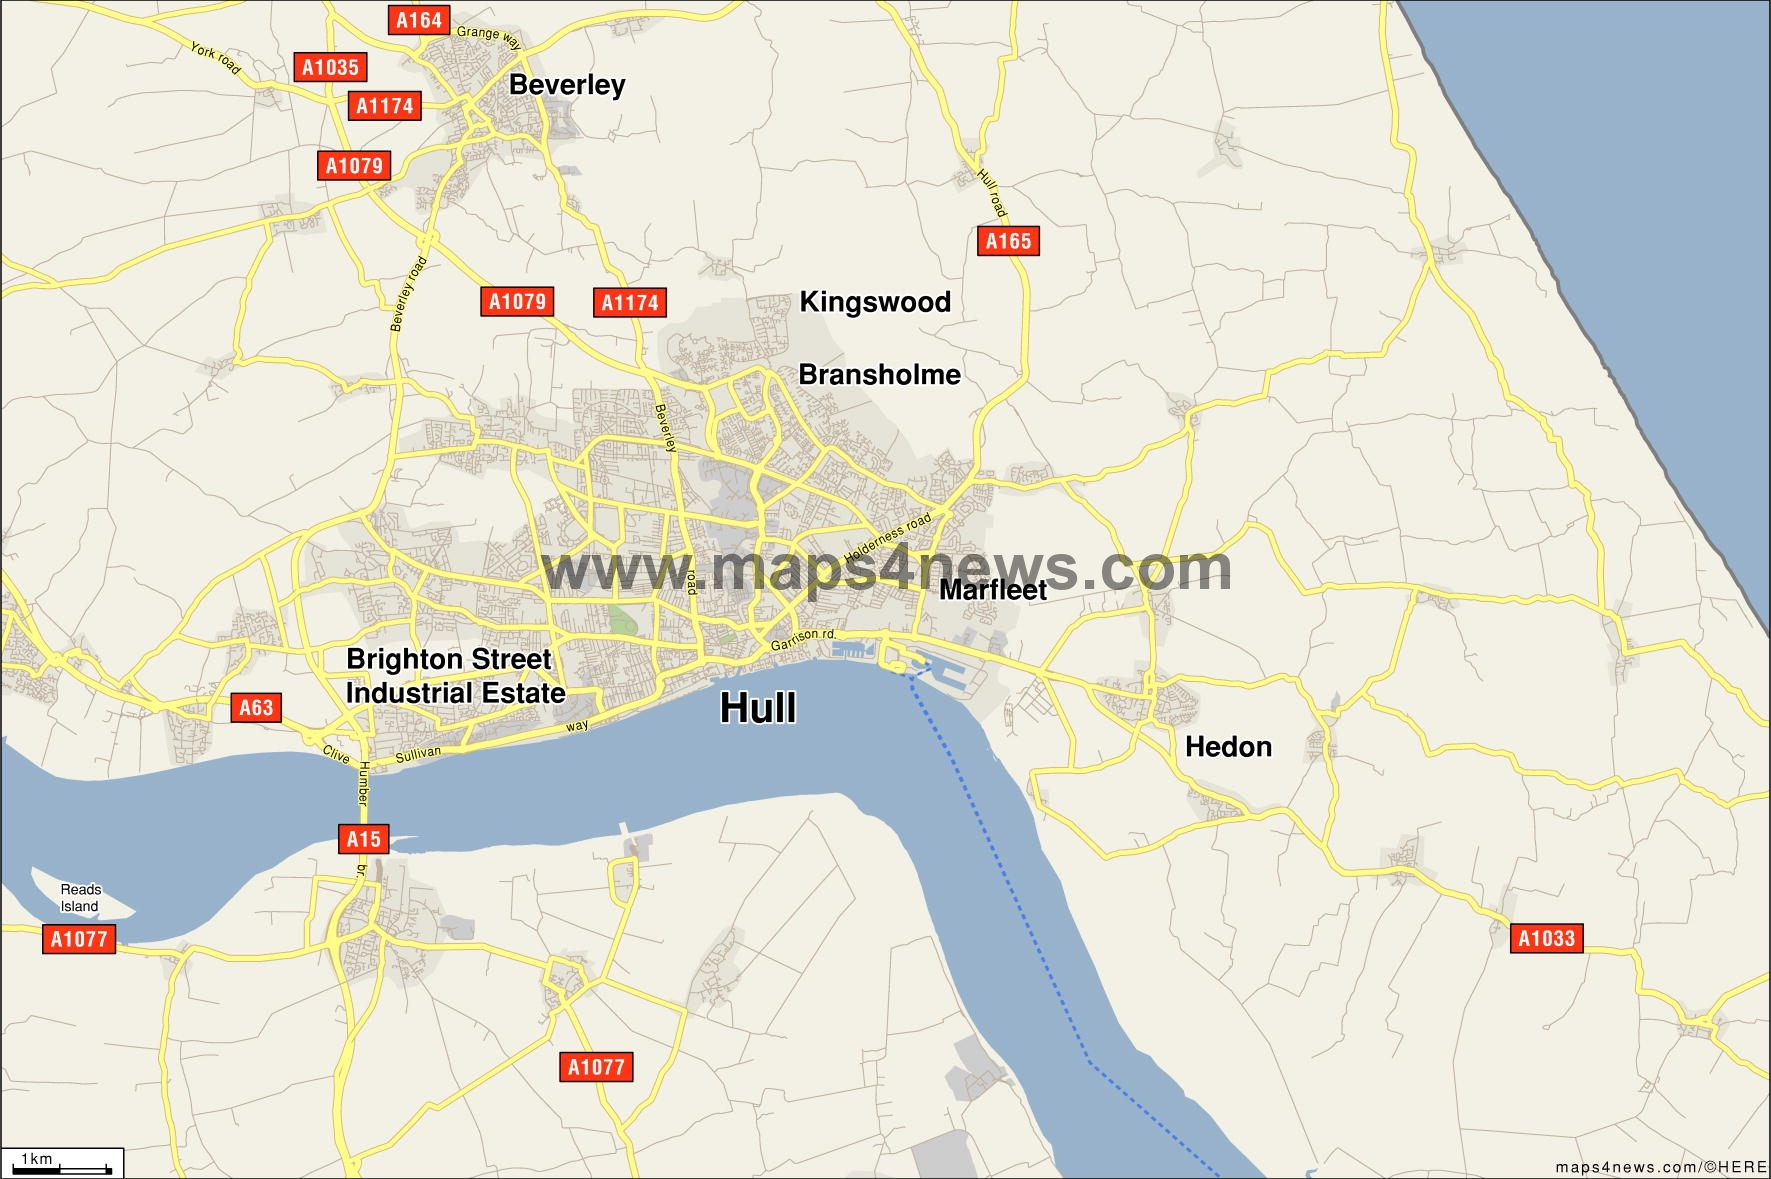 Putting HULLs Digital Agencies well and truly on the MAP Business